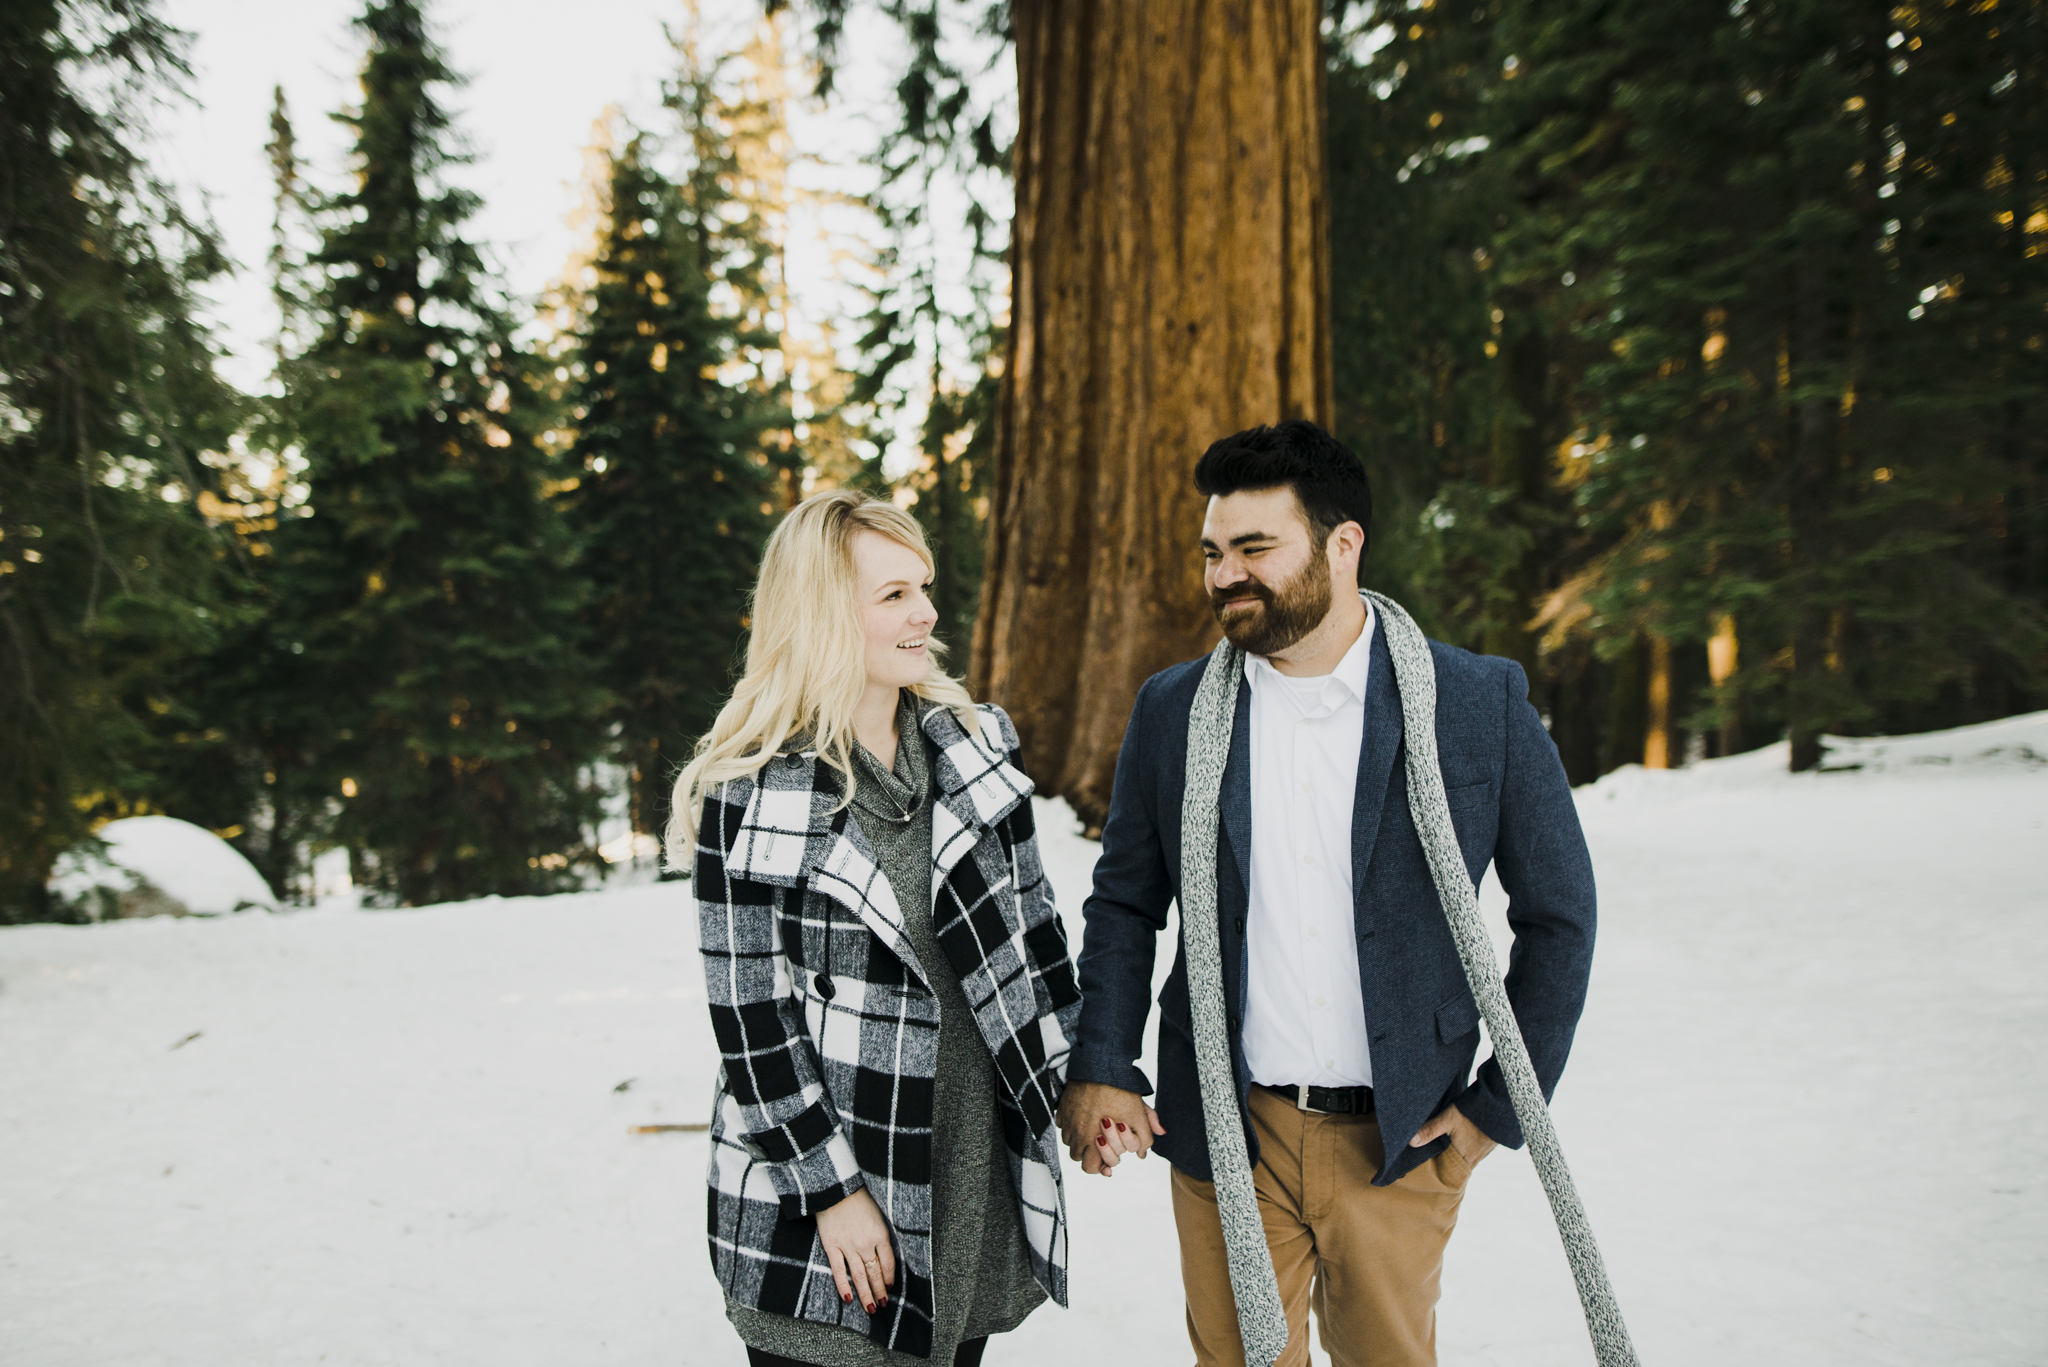 ©Isaiah-&-Taylor-Photography---George-&-Alyssa-Engagement---Sequoia-National-Park,-California-104.jpg